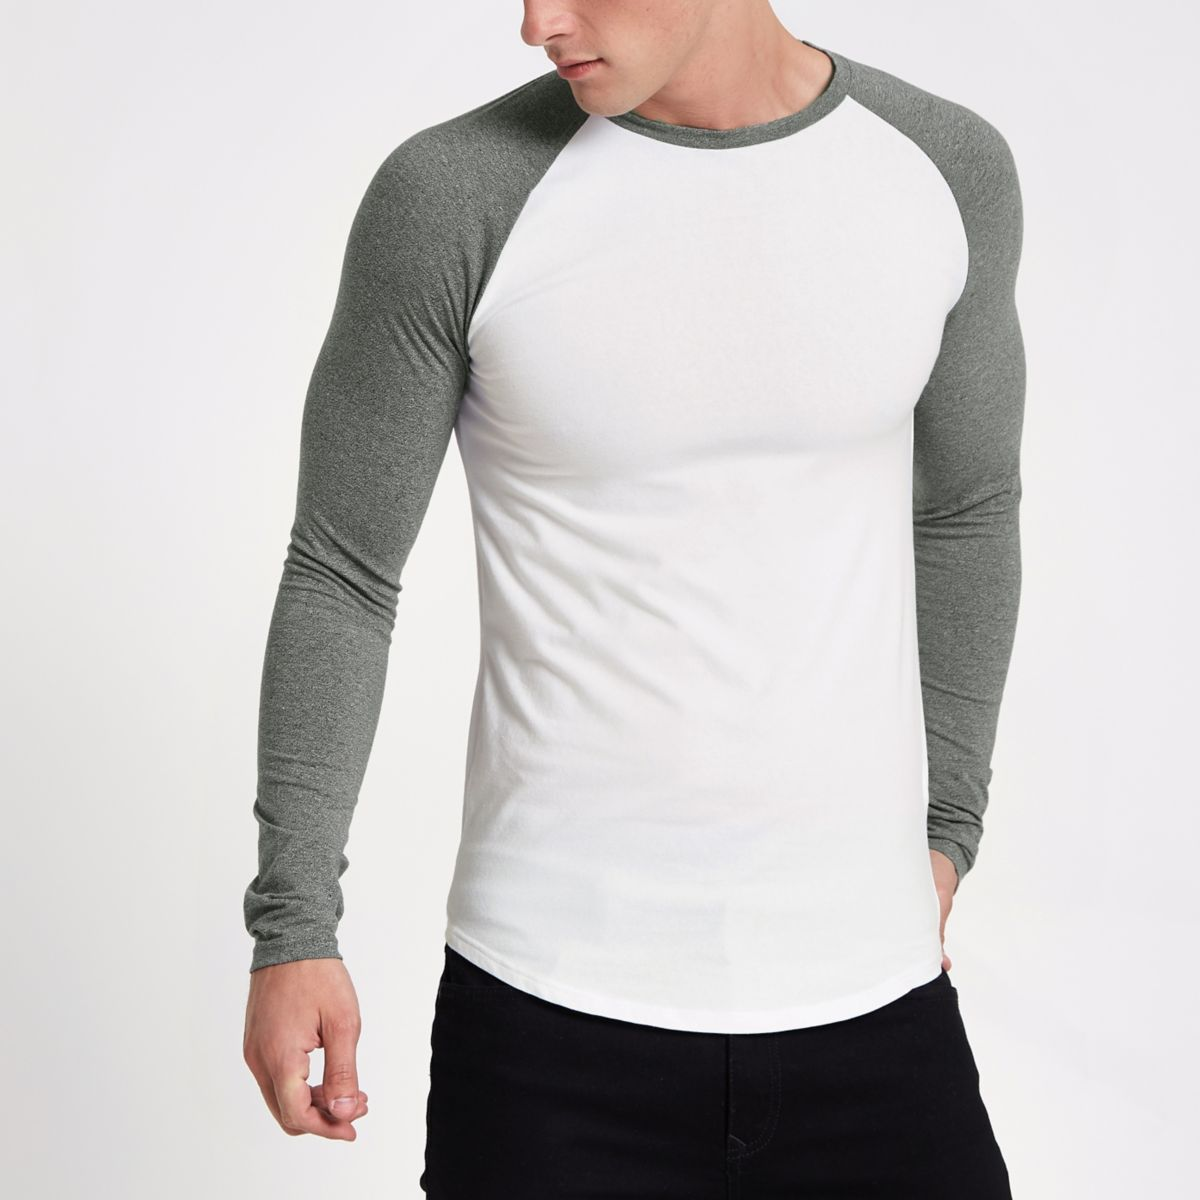 Weißes, langärmliges Muscle Fit T-Shirt